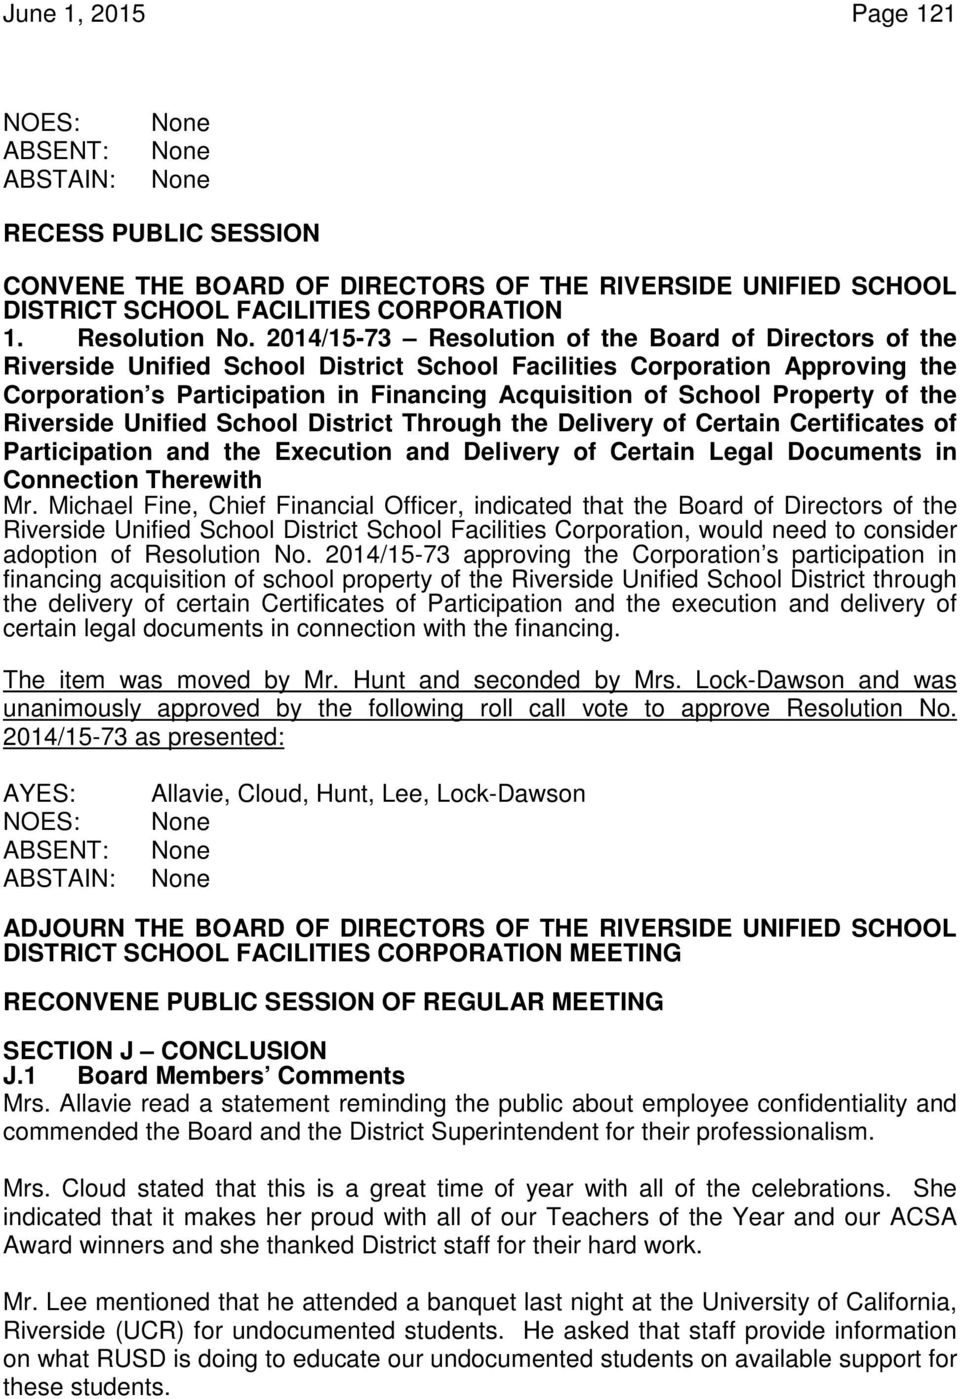 Property of the Riverside Unified School District Through the Delivery of Certain Certificates of Participation and the Execution and Delivery of Certain Legal Documents in Connection Therewith Mr.